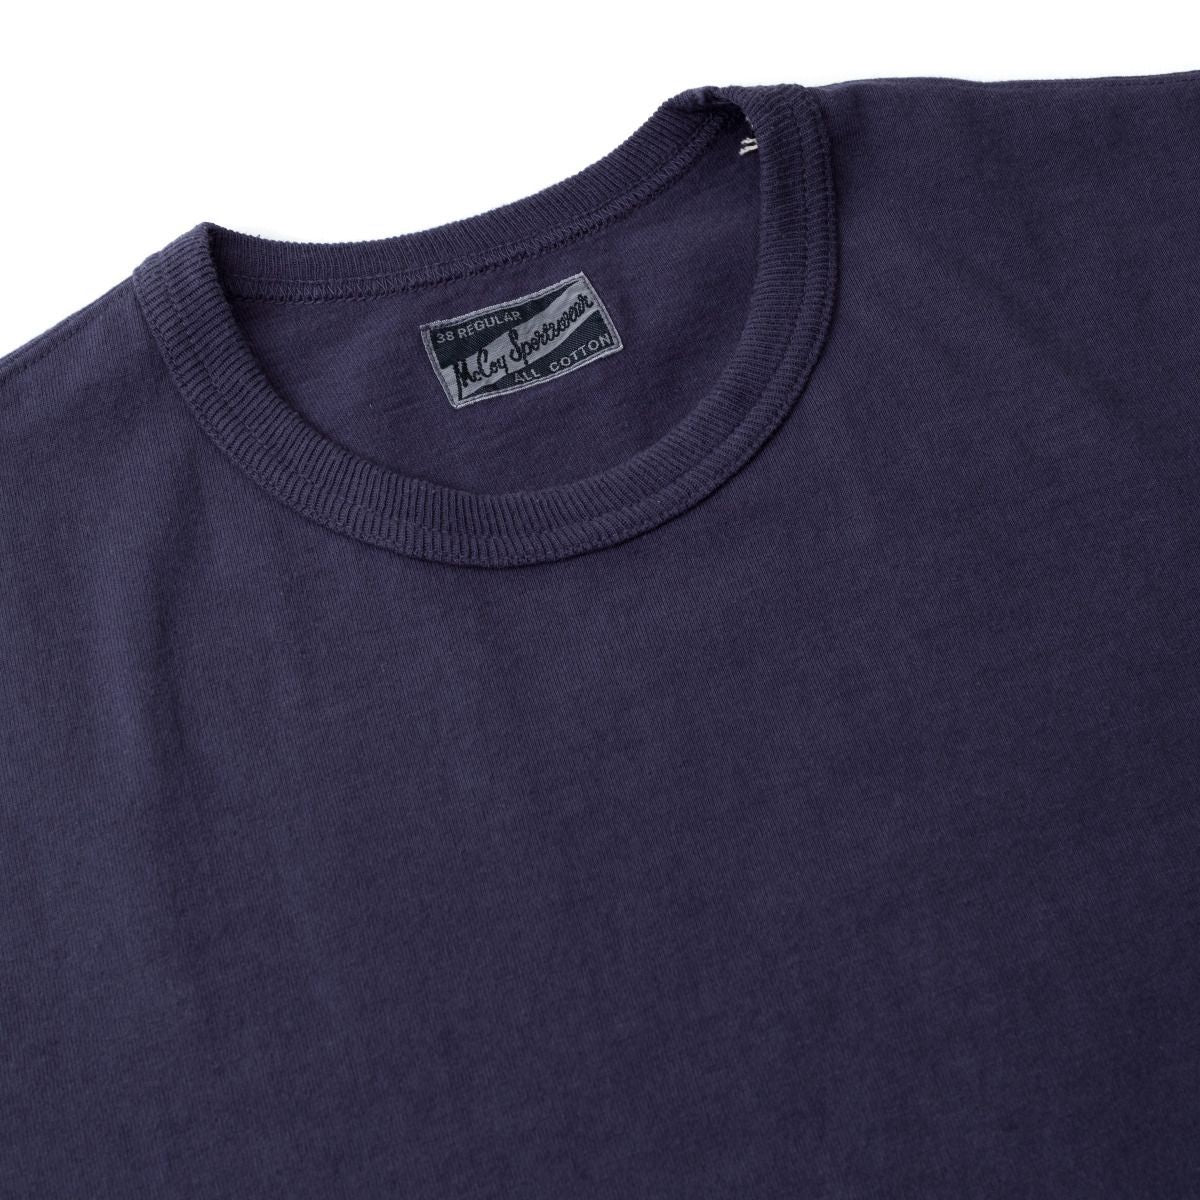 The Real McCoy's Joe McCoy Overdyed Tee Navy